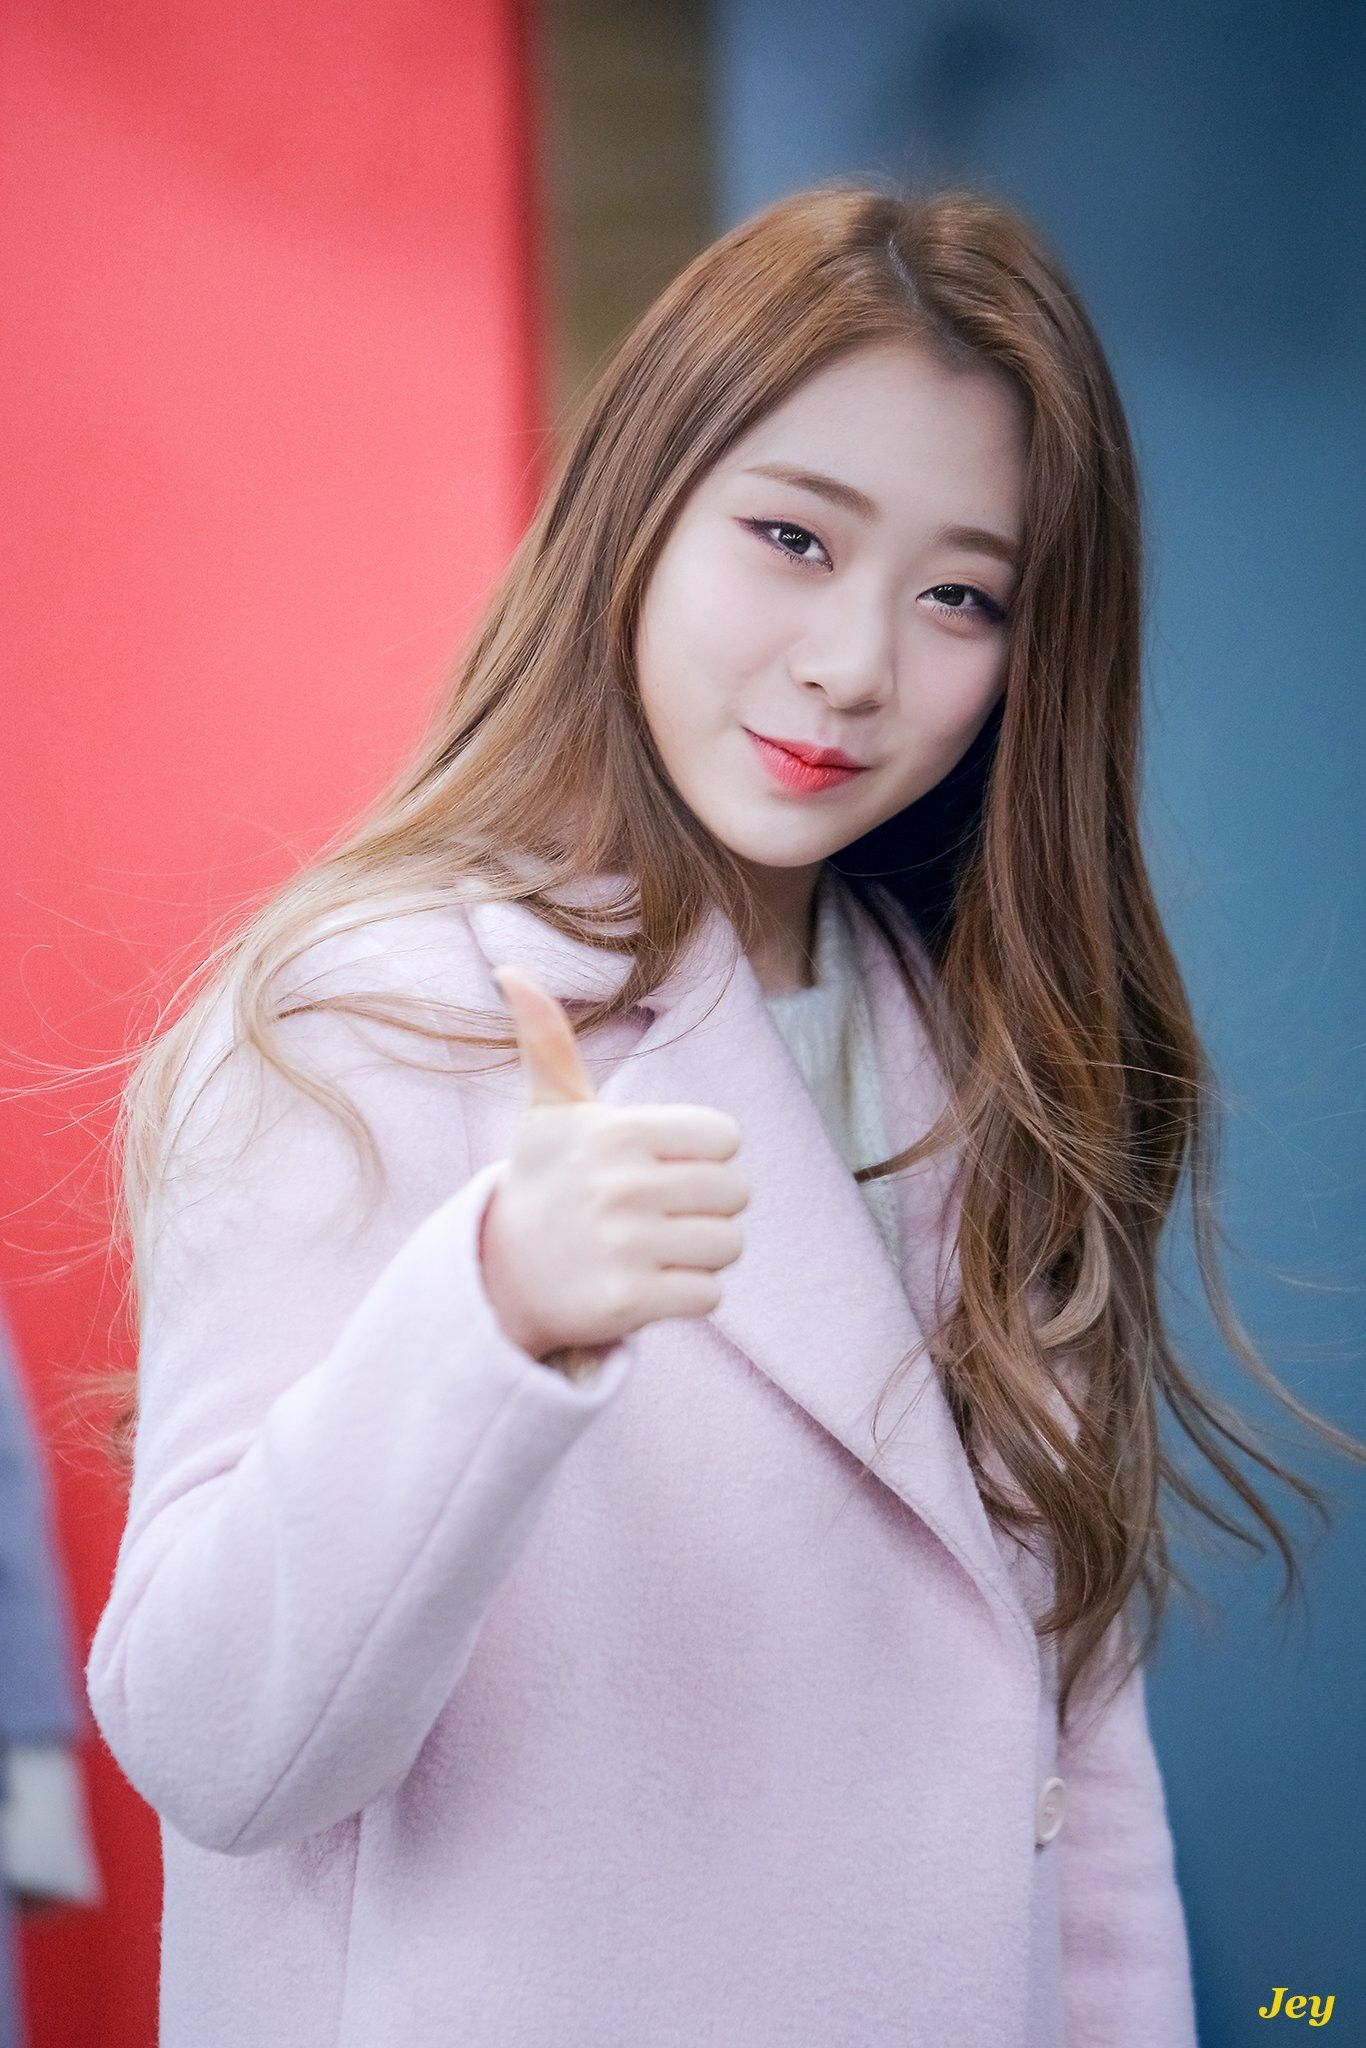 99yeonjung1